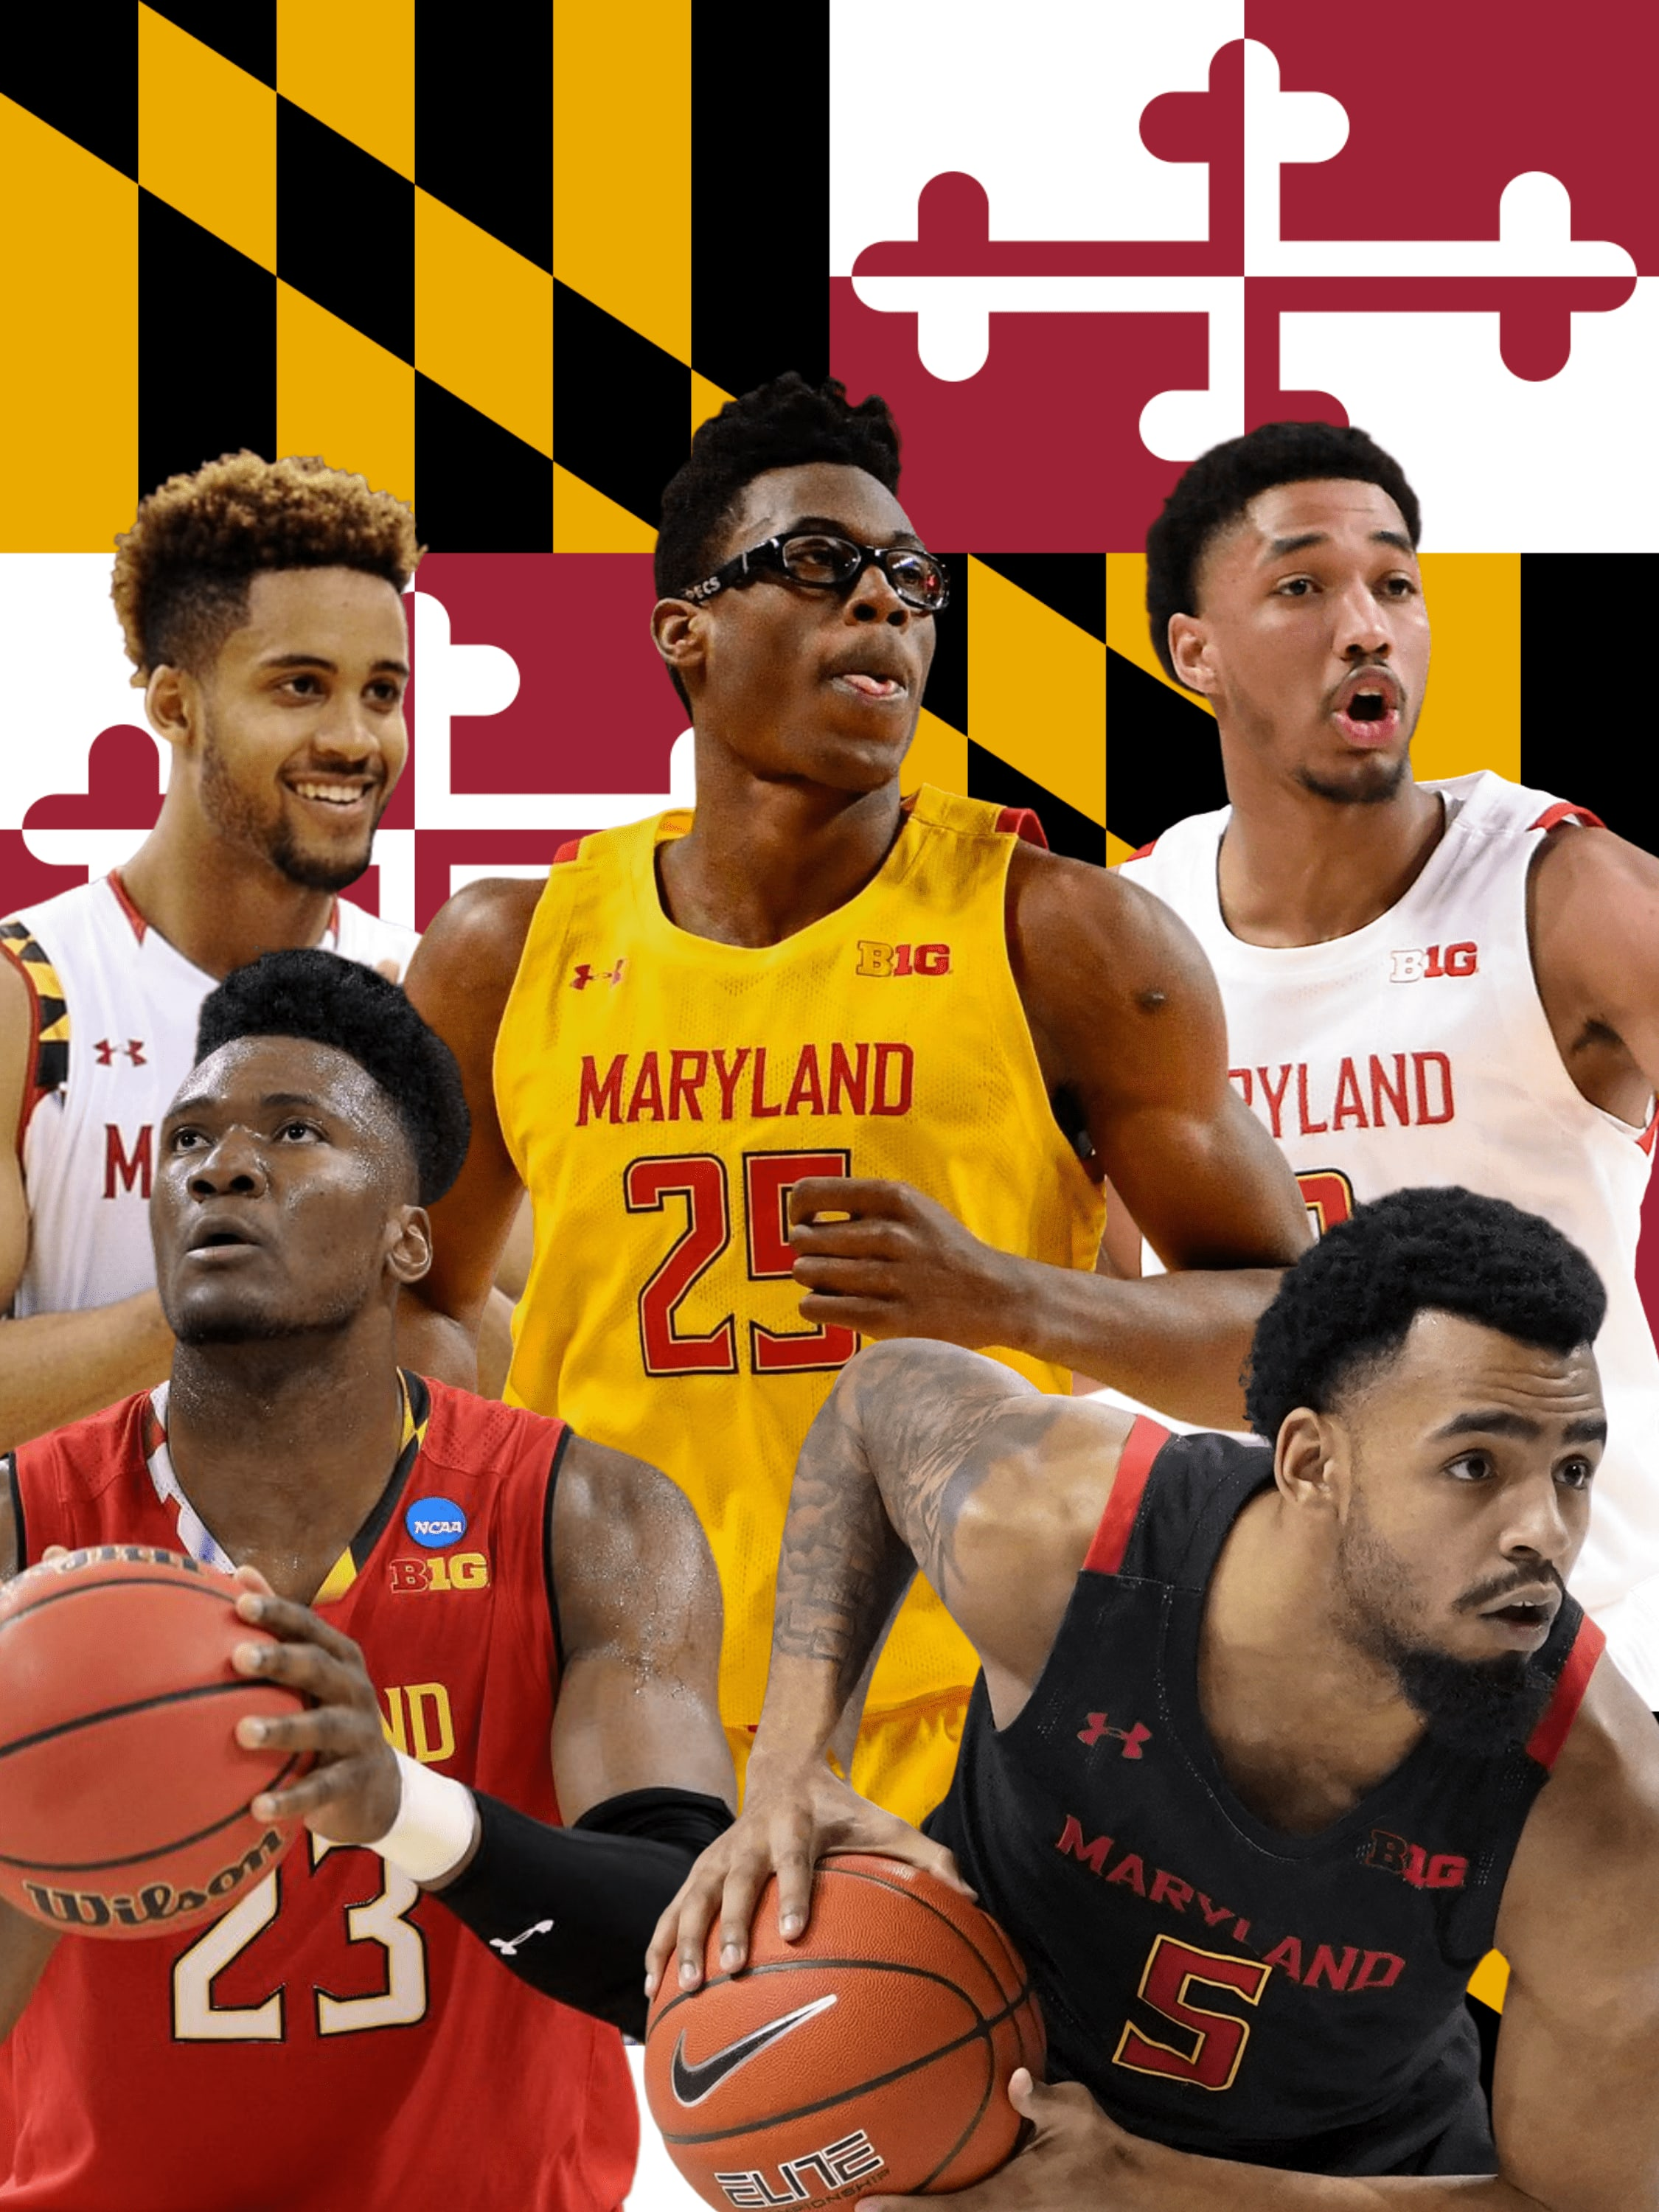 Mark Turgeon has been the head men's basketball coach at Maryland for 10 years, so a group of Terps alumni came toether to make their All-Turgeon teams.